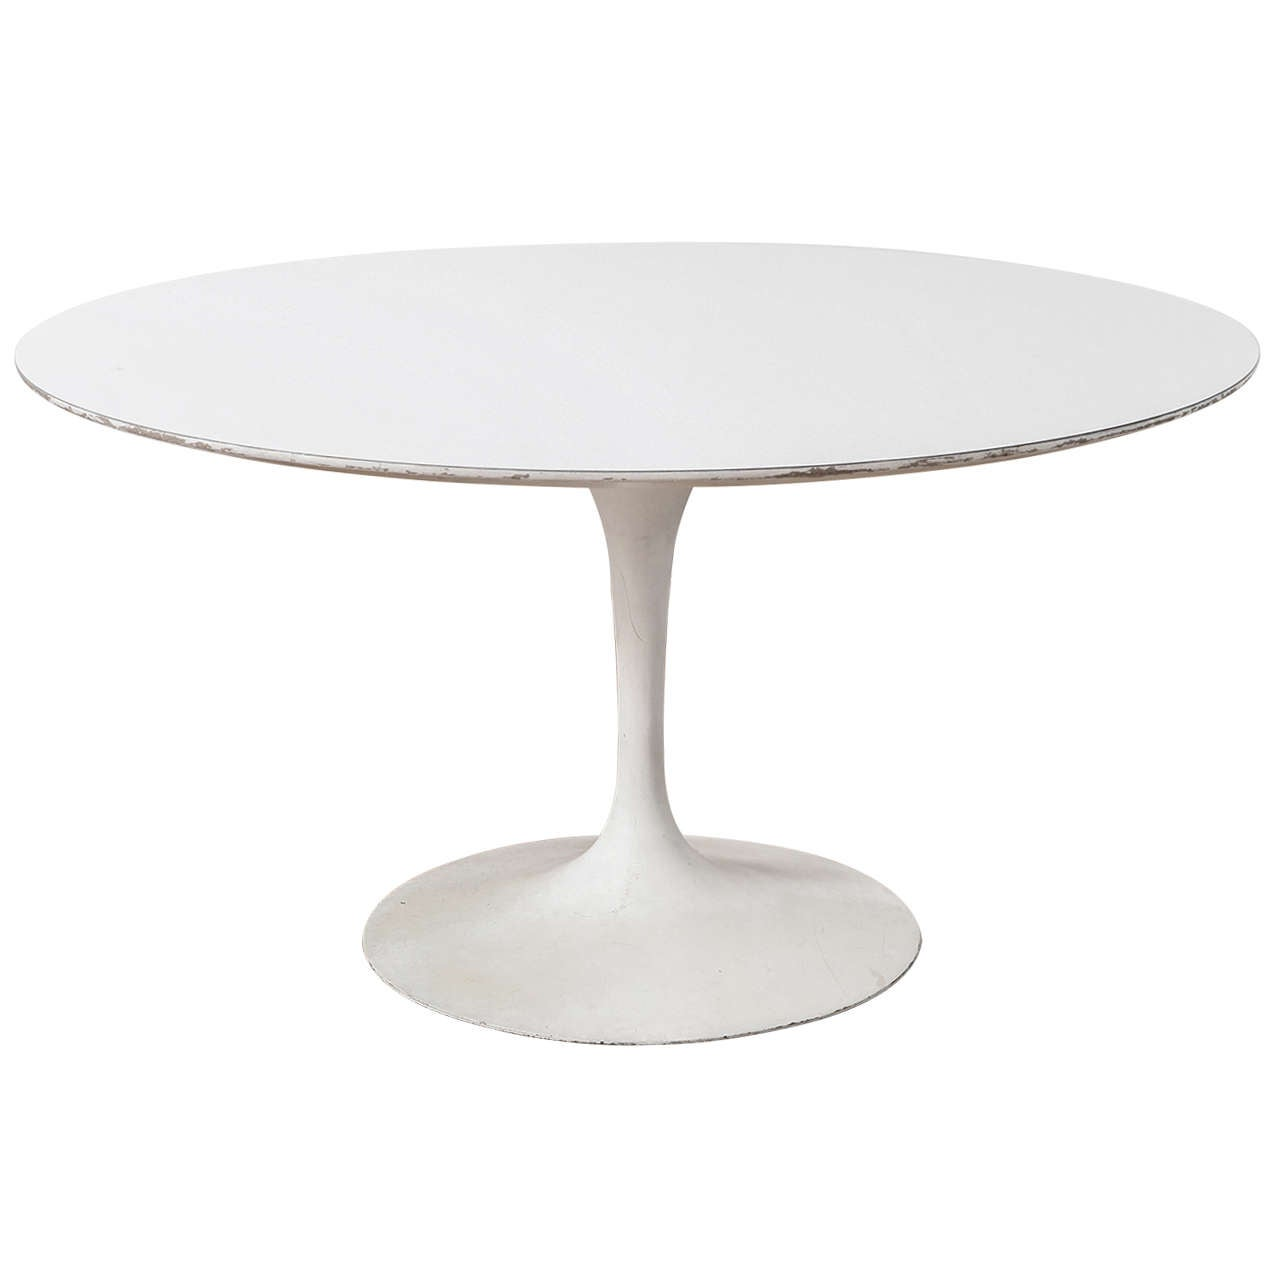 Saarinen Knoll Table Distressed Saarinen For Knoll Tulip Table